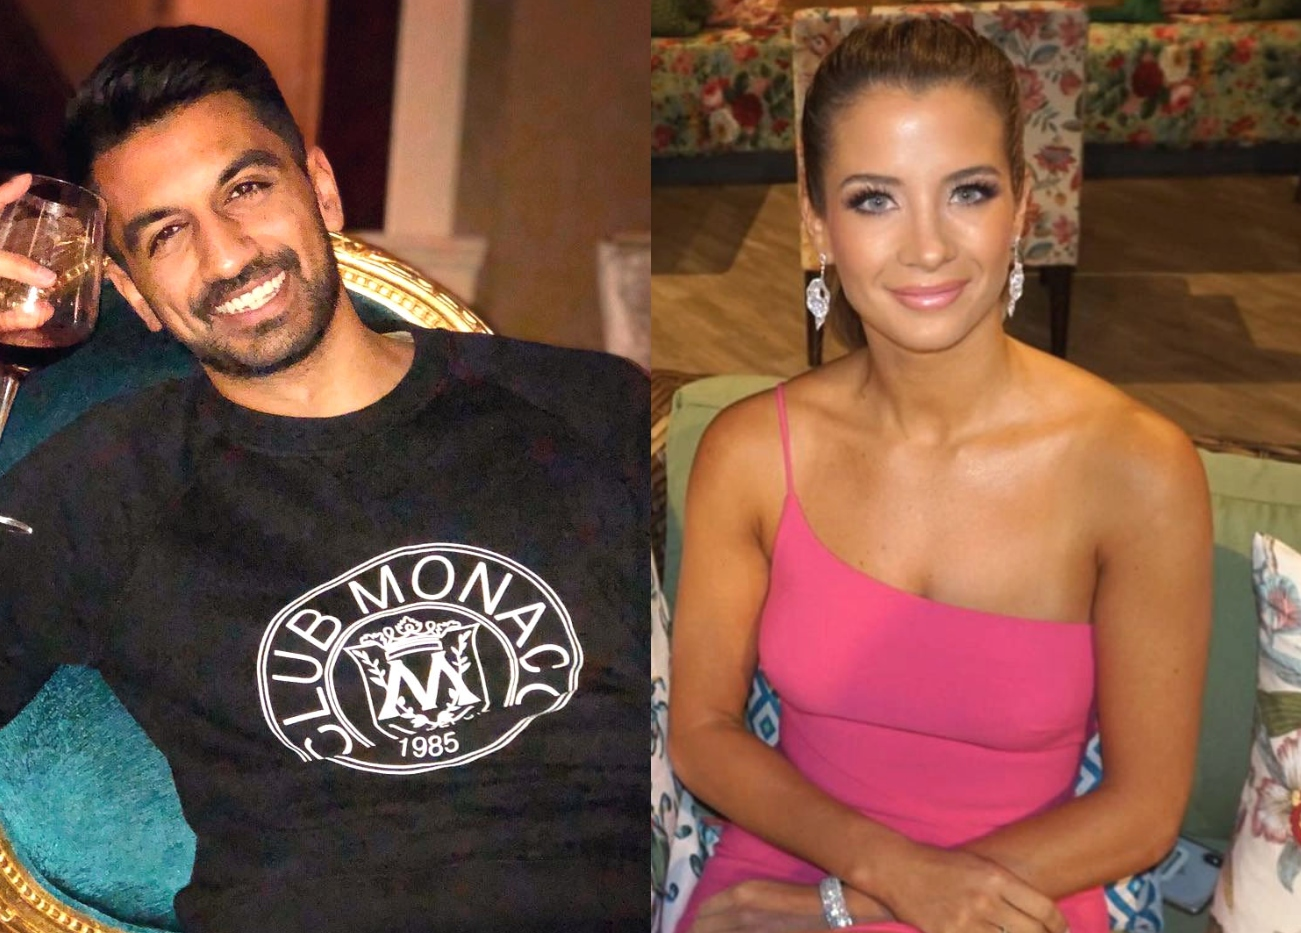 Ex-Southern Charm Star Metul Shah Unfollows Naomie Olindo, Deletes Her Recent Pics After Messy Split